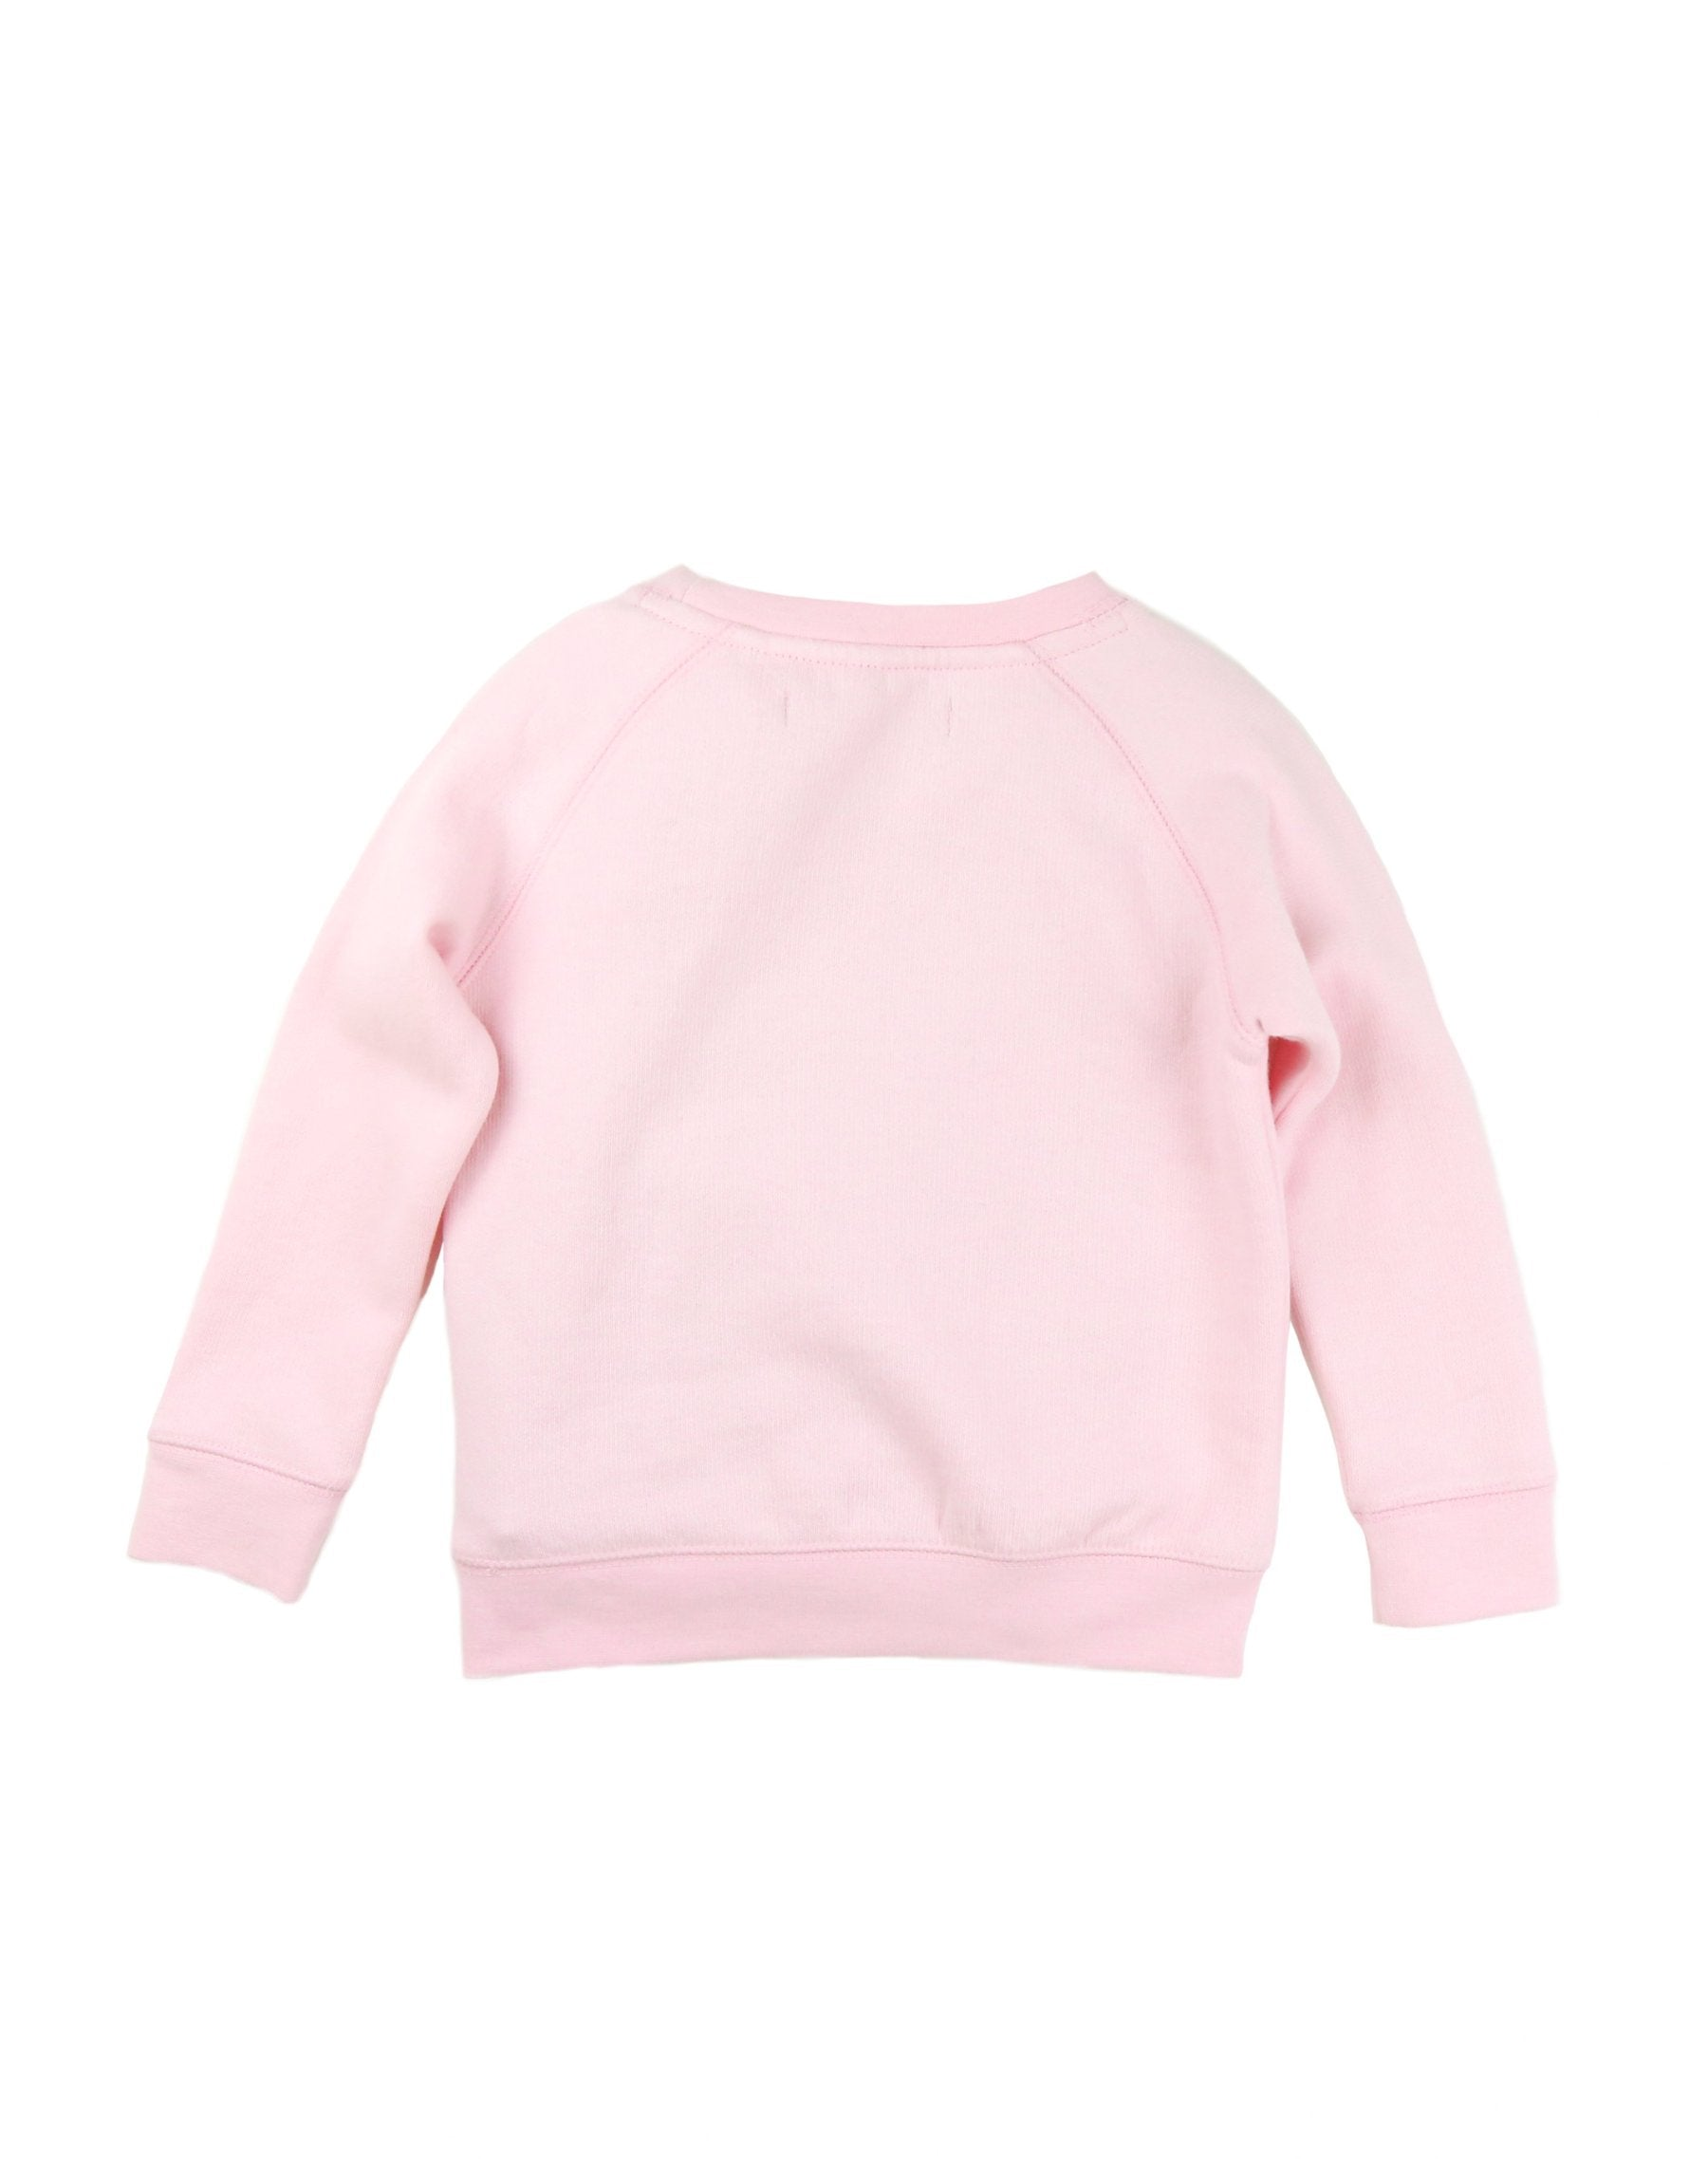 Photo of the back of the Boss Babes classic crew neck sweatshirt in pretty pink by Brunette the Label.